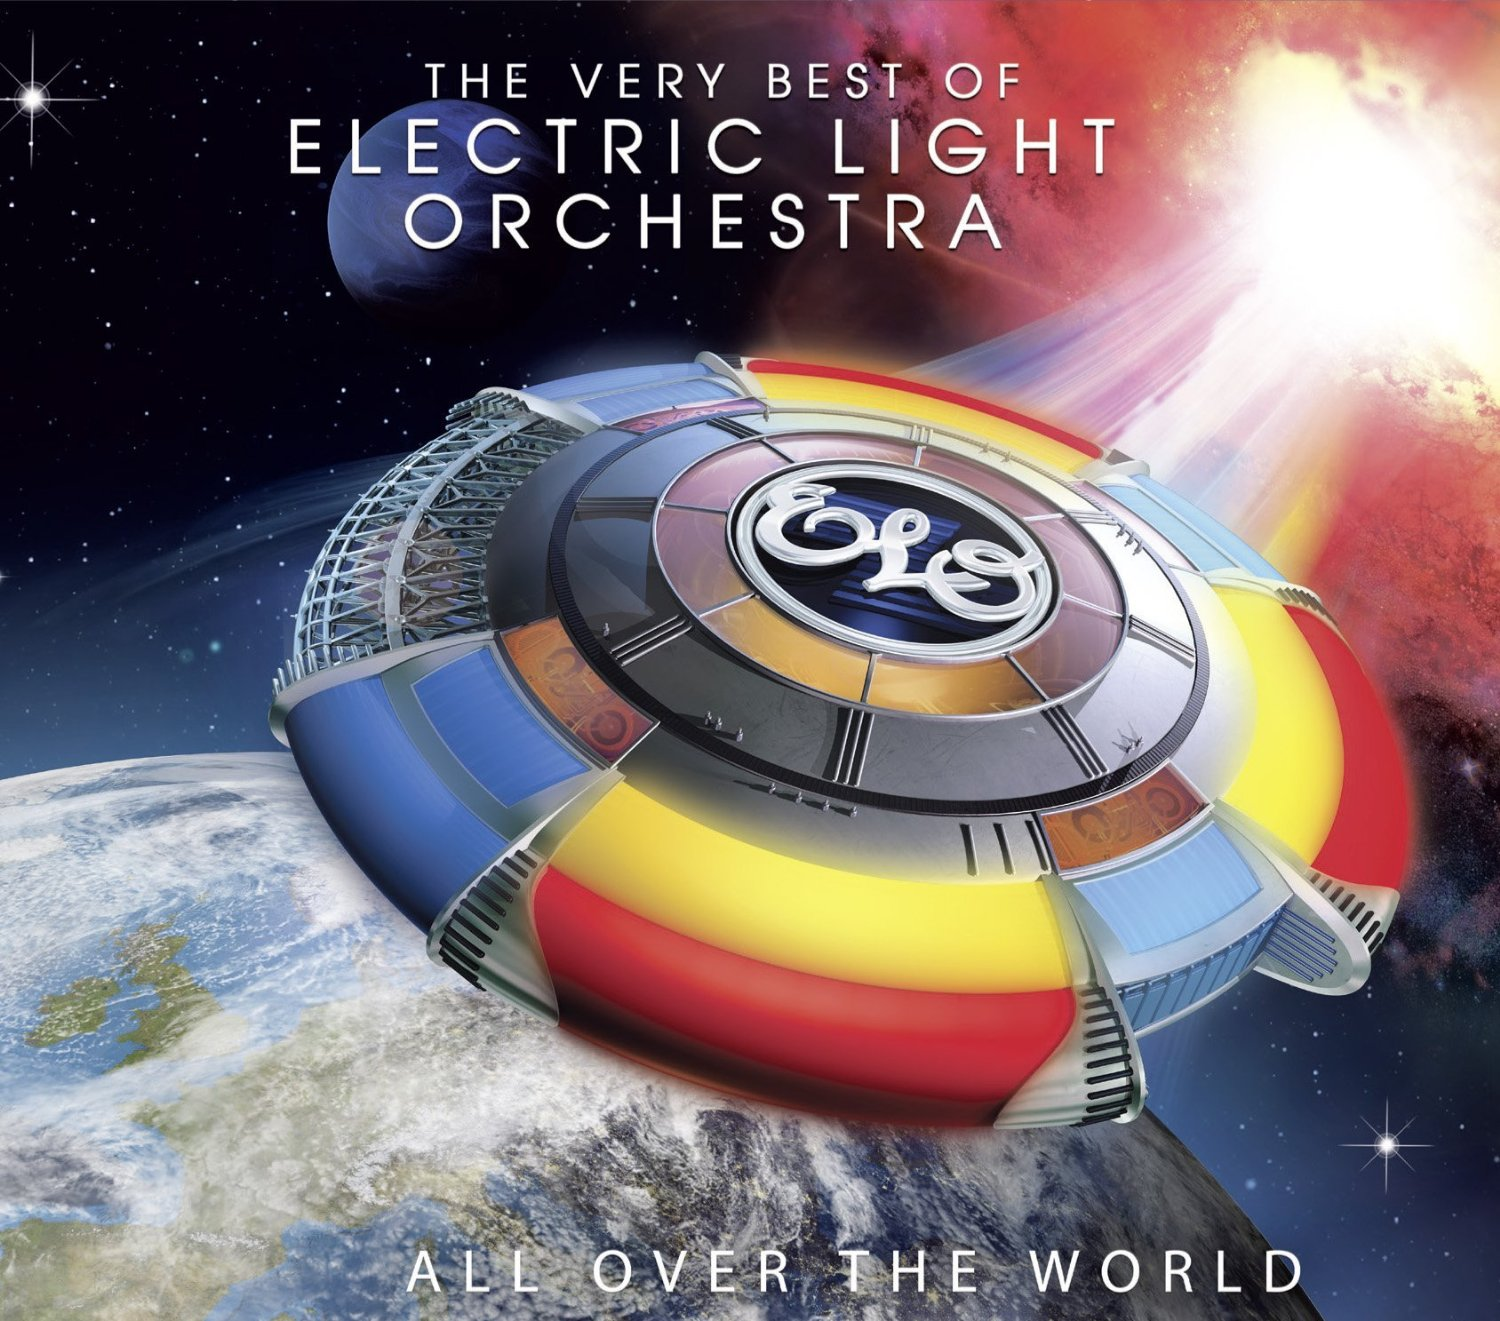 All Over The World The Very Best Of Electric Light Orchestra